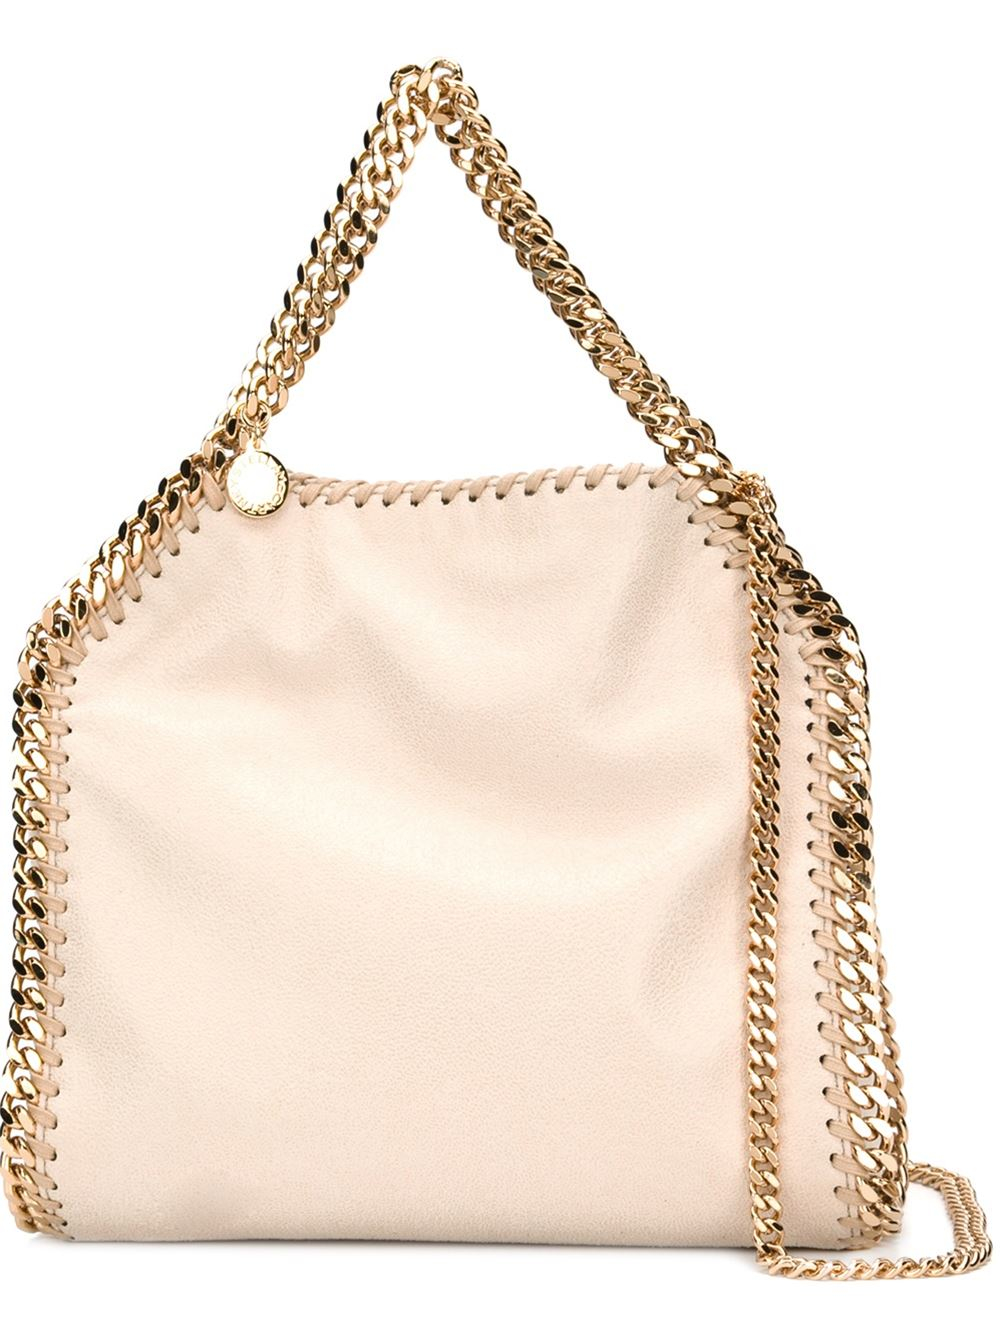 d3ef6c4ed6 Gallery. Previously sold at  TESSABIT · Women s Stella Mccartney Falabella  ...